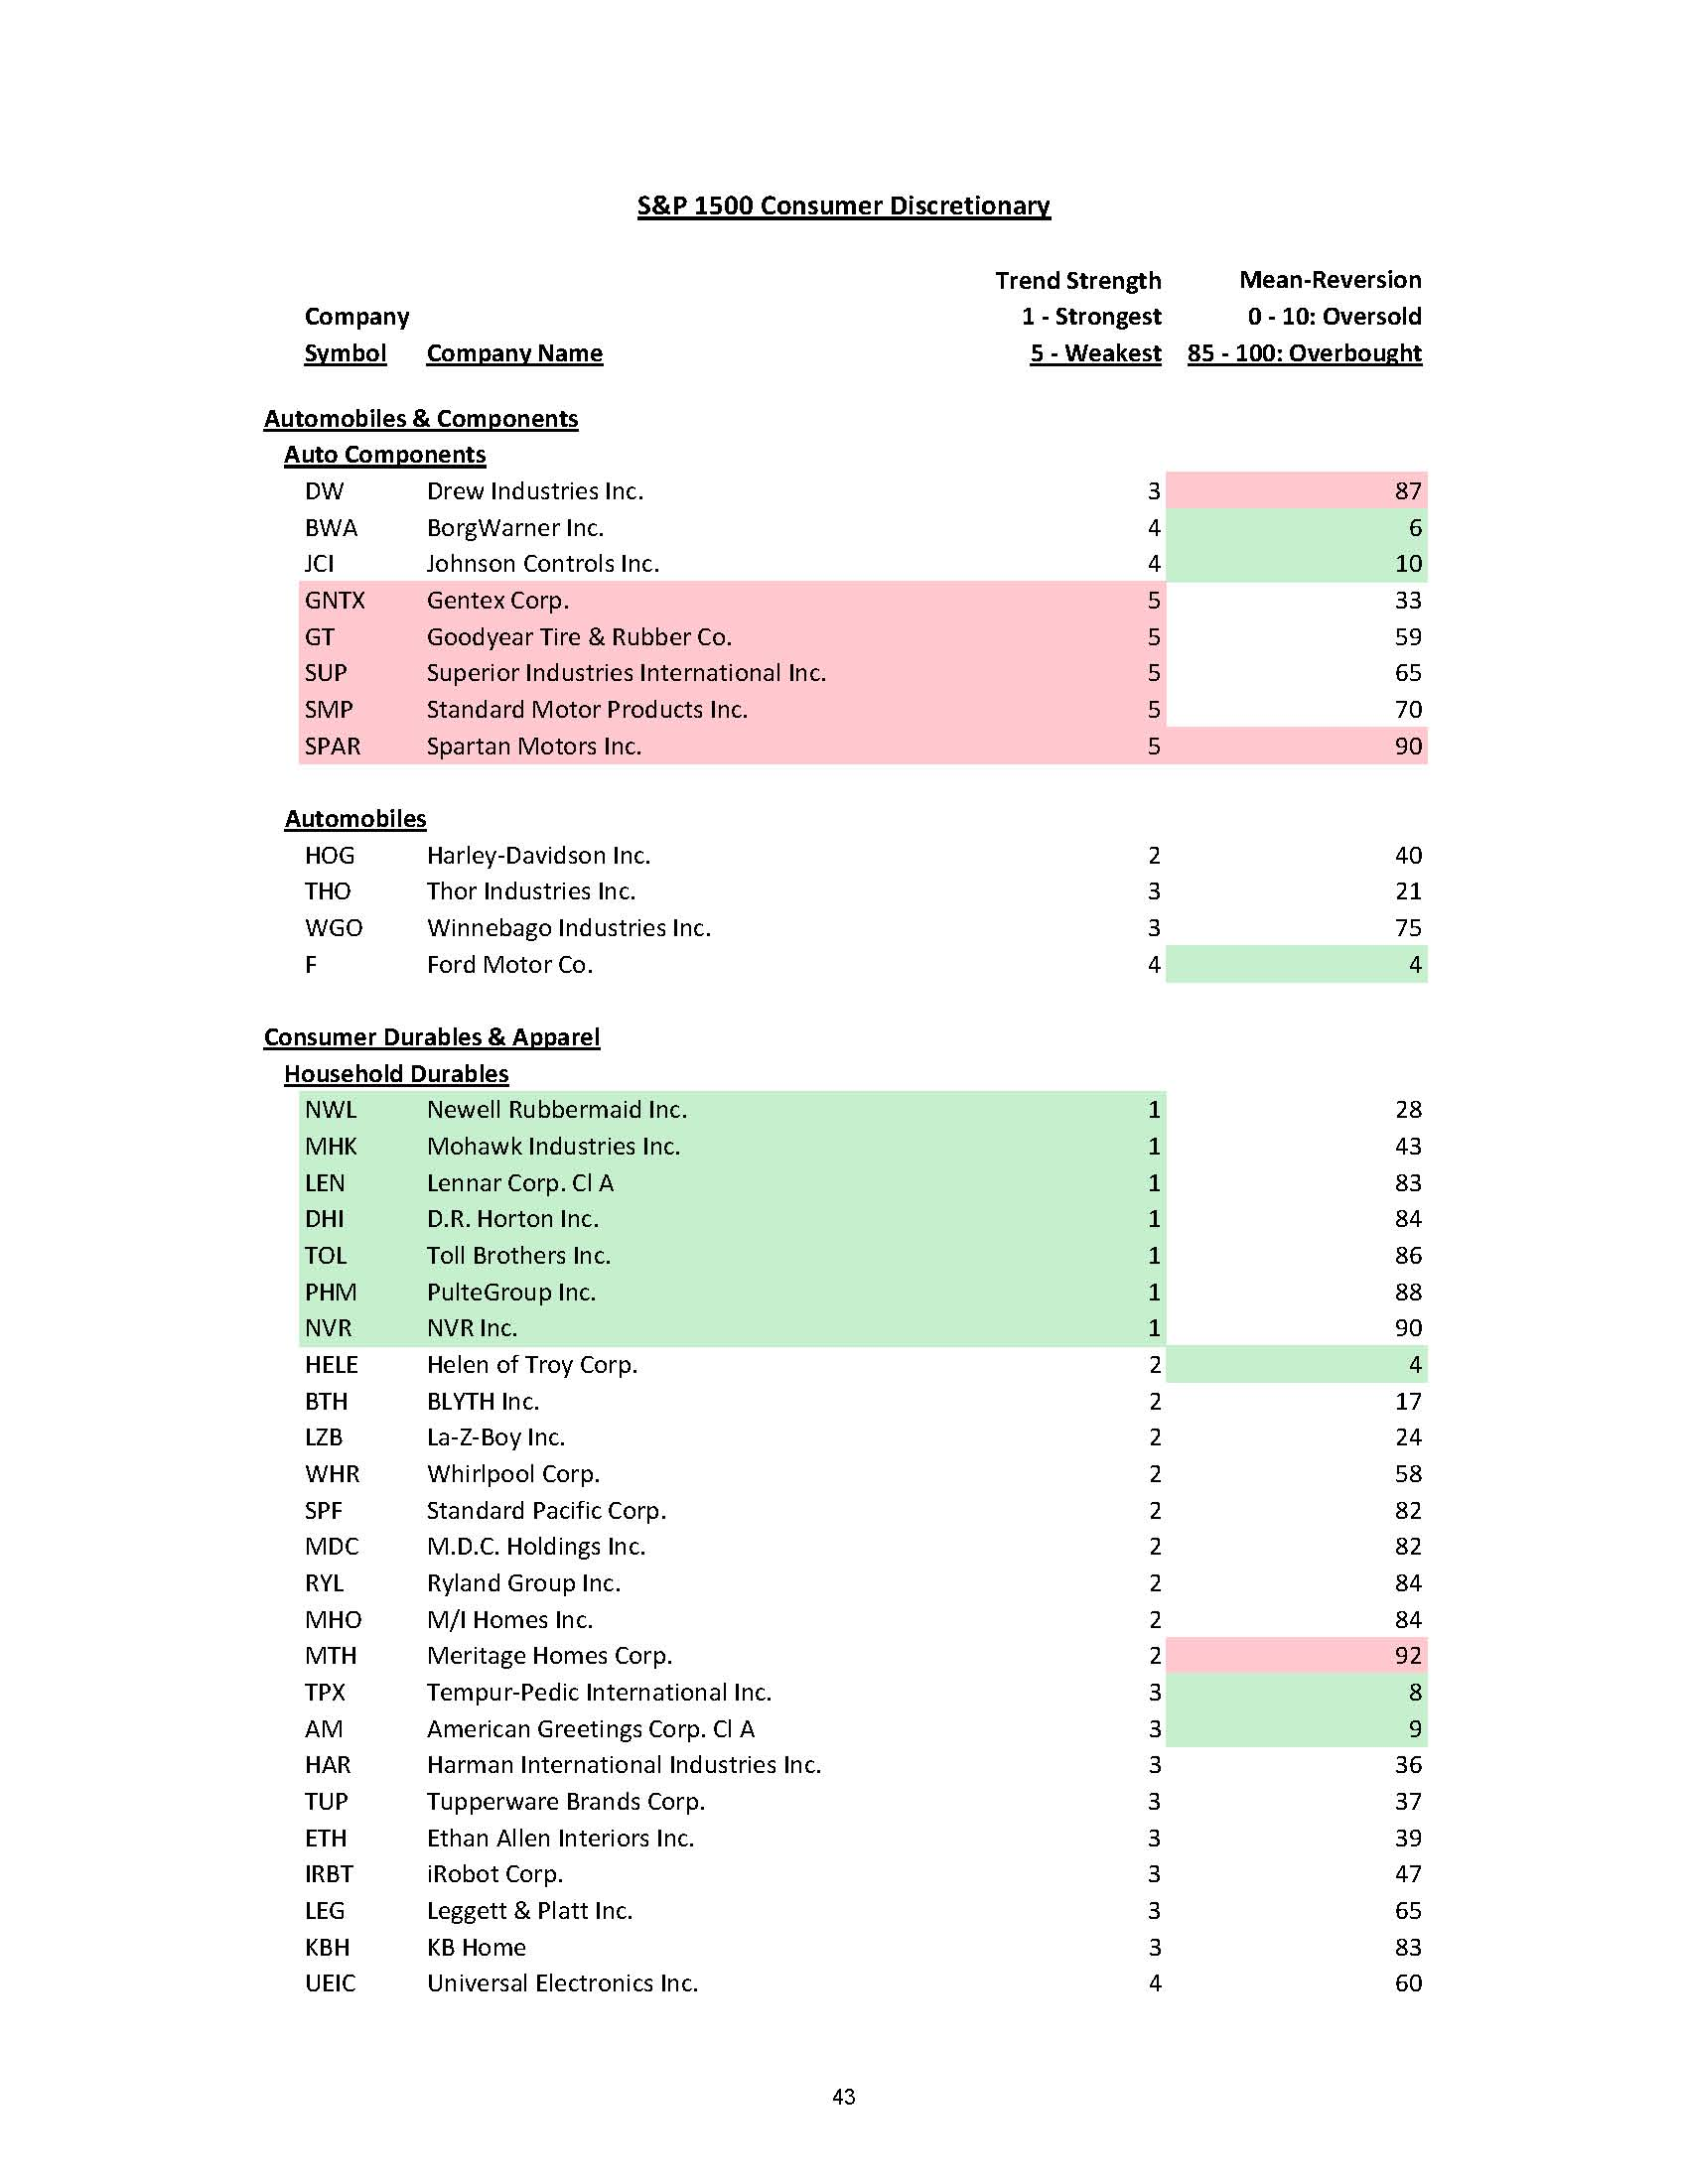 Consumer Discretionary Deep-Dive 07.12.12_Page_43